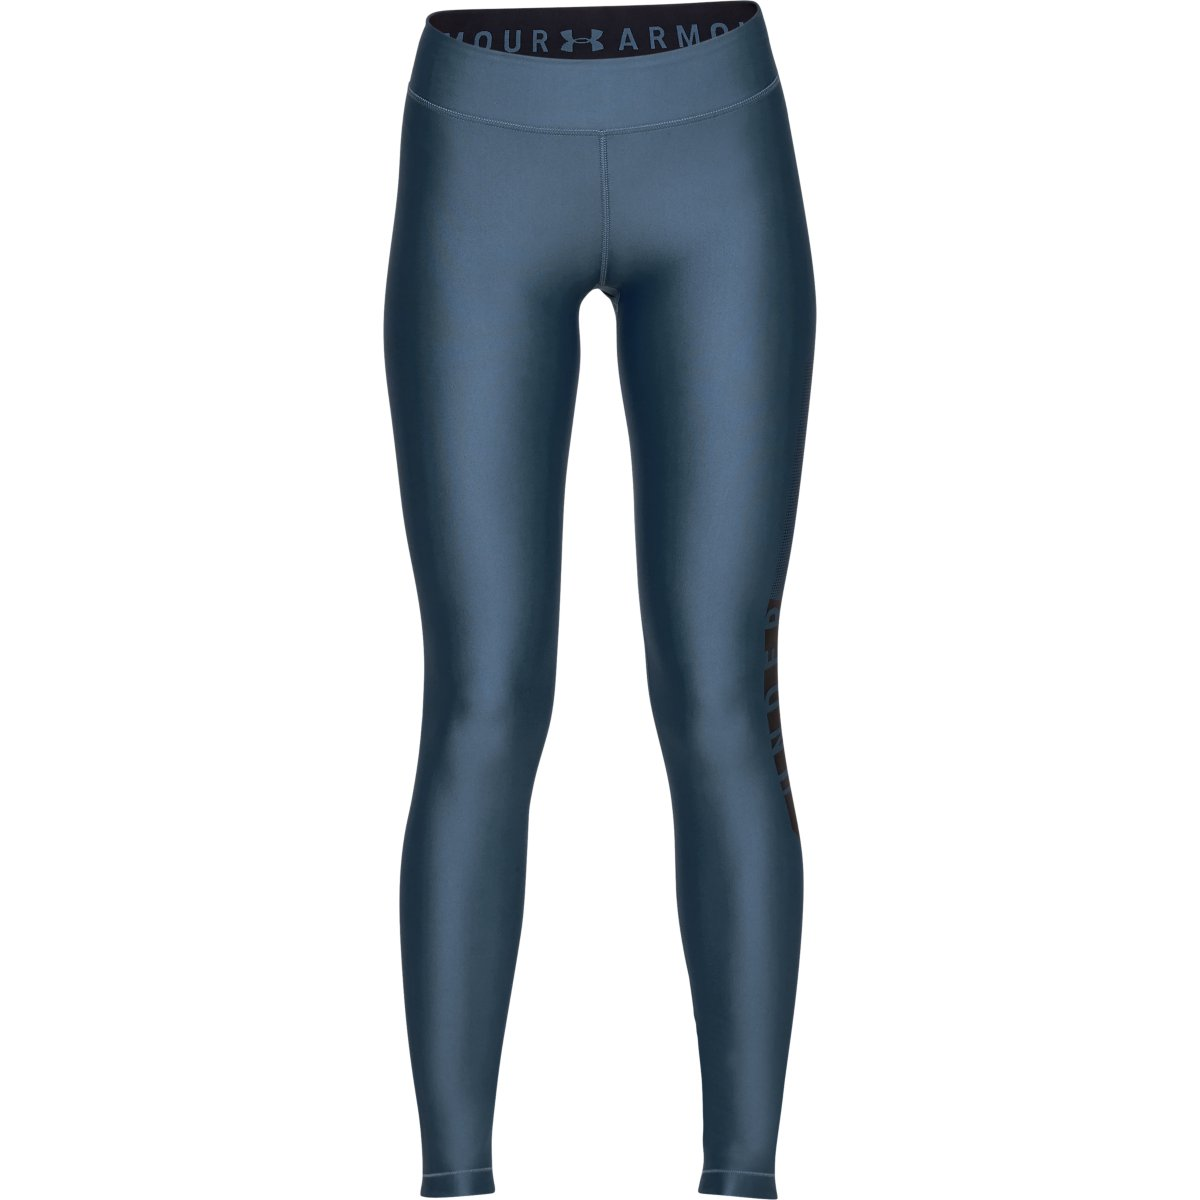 Under Armour Women's HeatGear Armour Graphic Legging | Amour